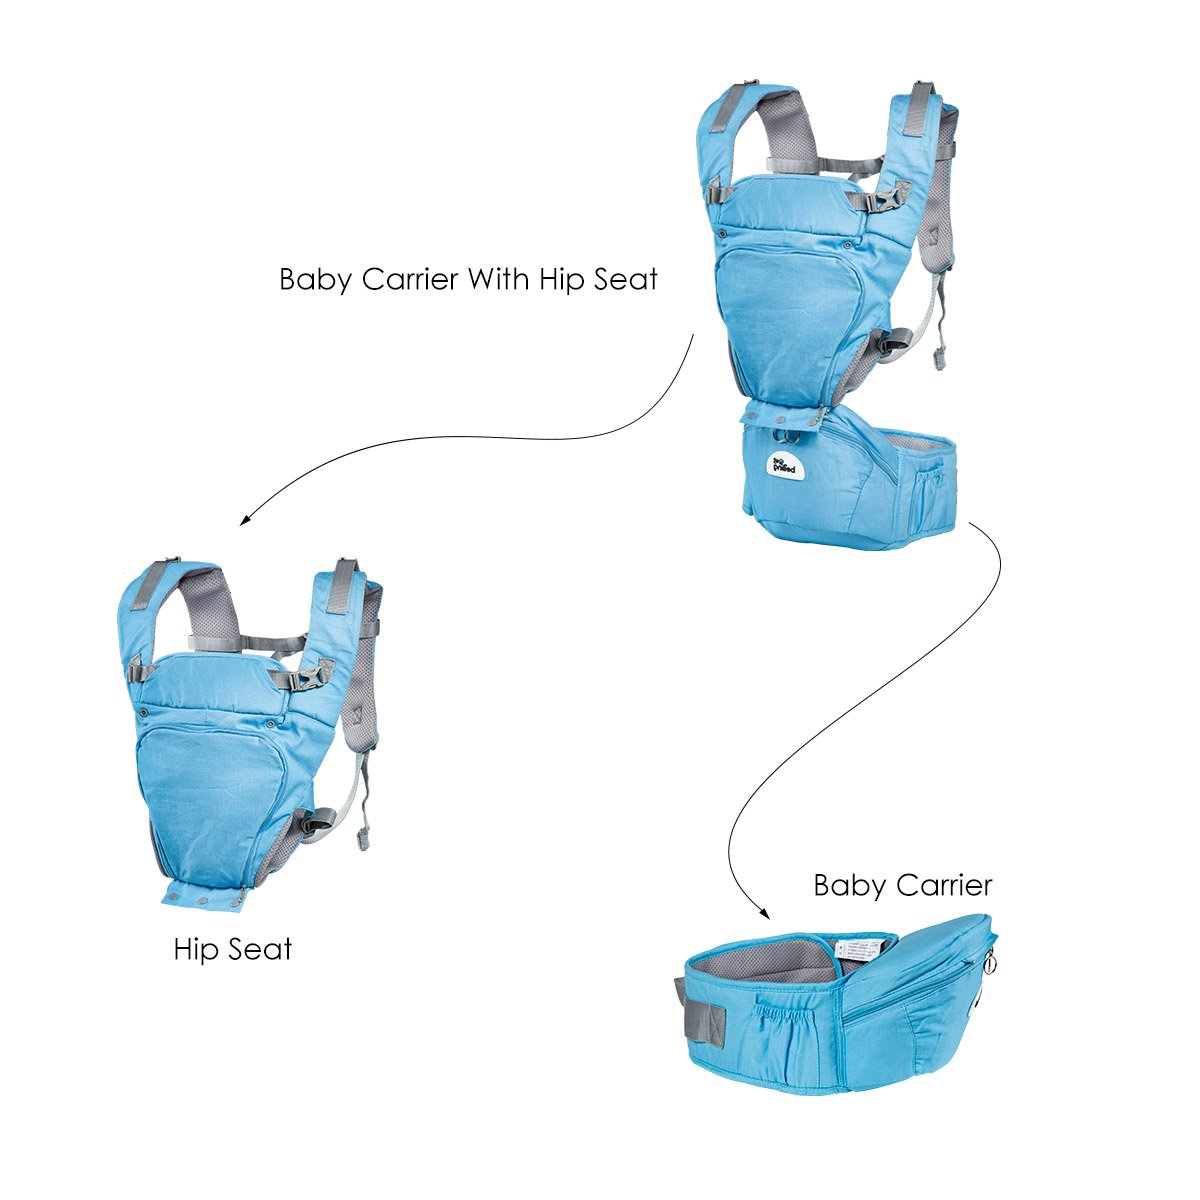 Joly Joy Baby Carrier with Hip Seat, Removable 6-in-1 multifunctional adjustable baby carriers, 360 Ergonomic Baby Carriers Backpack- Adapt to Newborn, Infant & Toddler, All Season Baby Sling